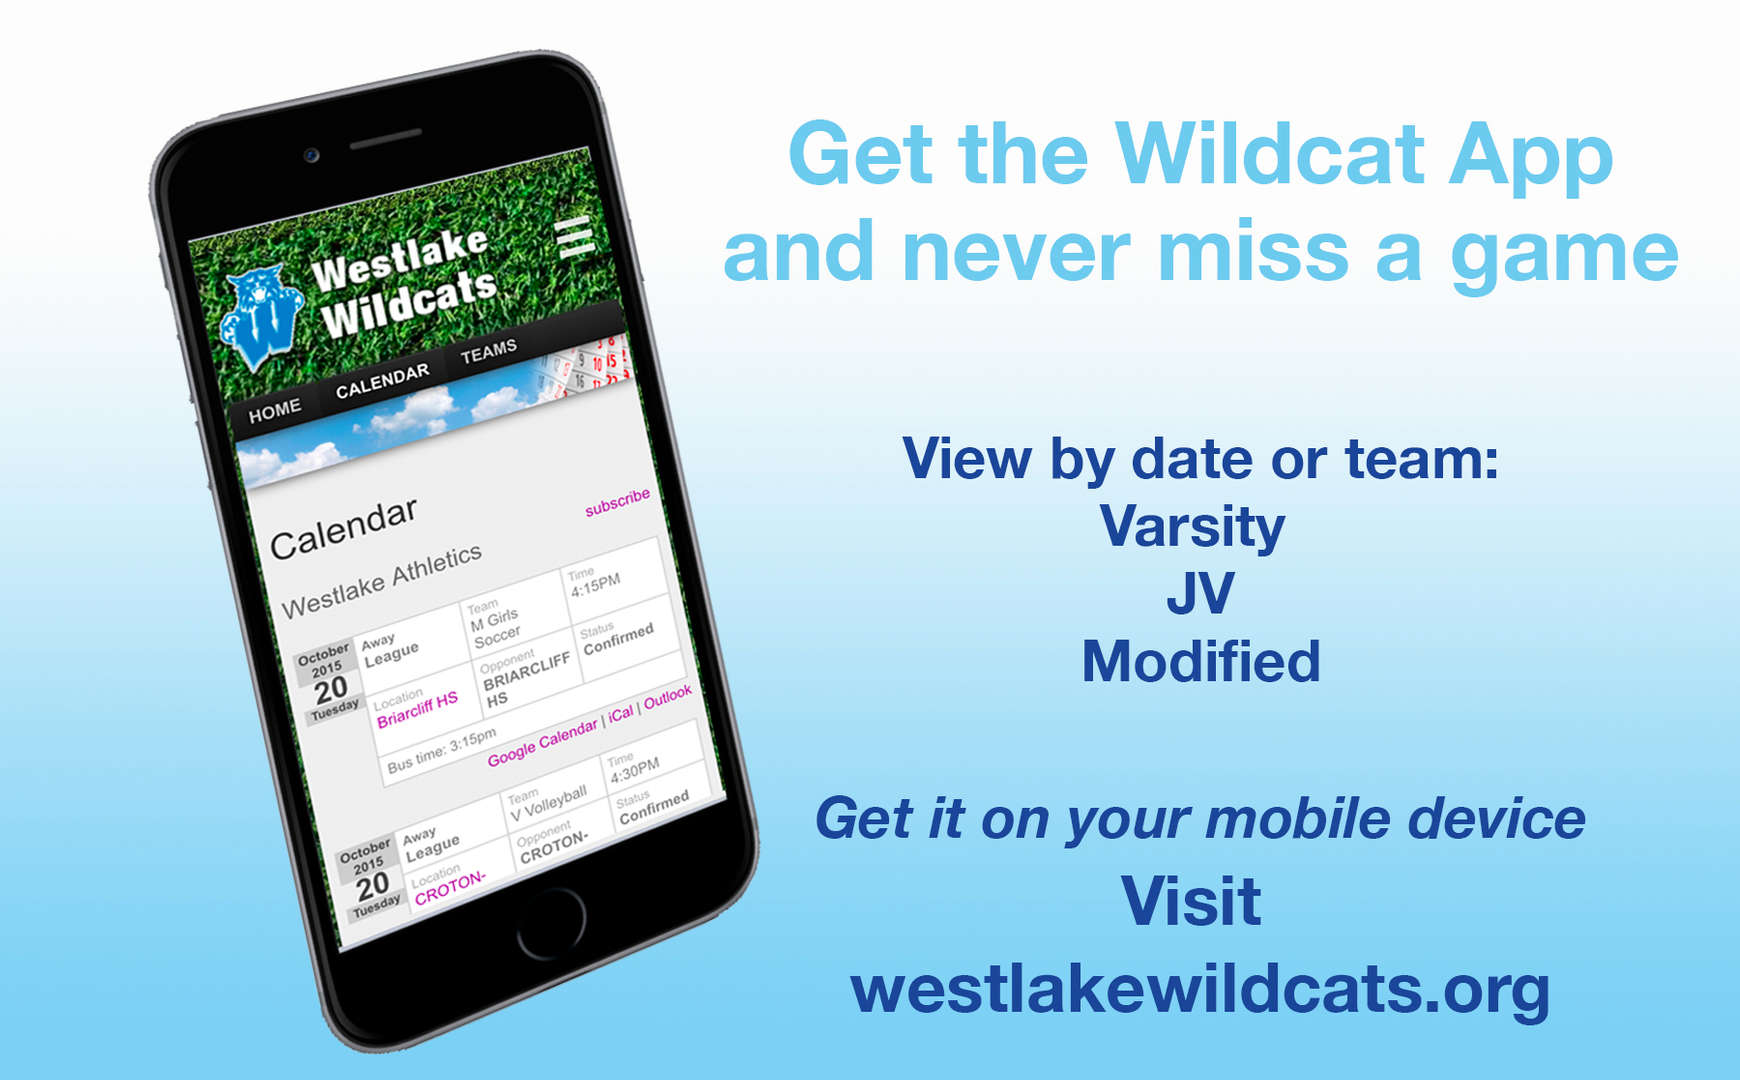 Get the Wildcat App and Never Miss a game. visit westlakewildcats.org